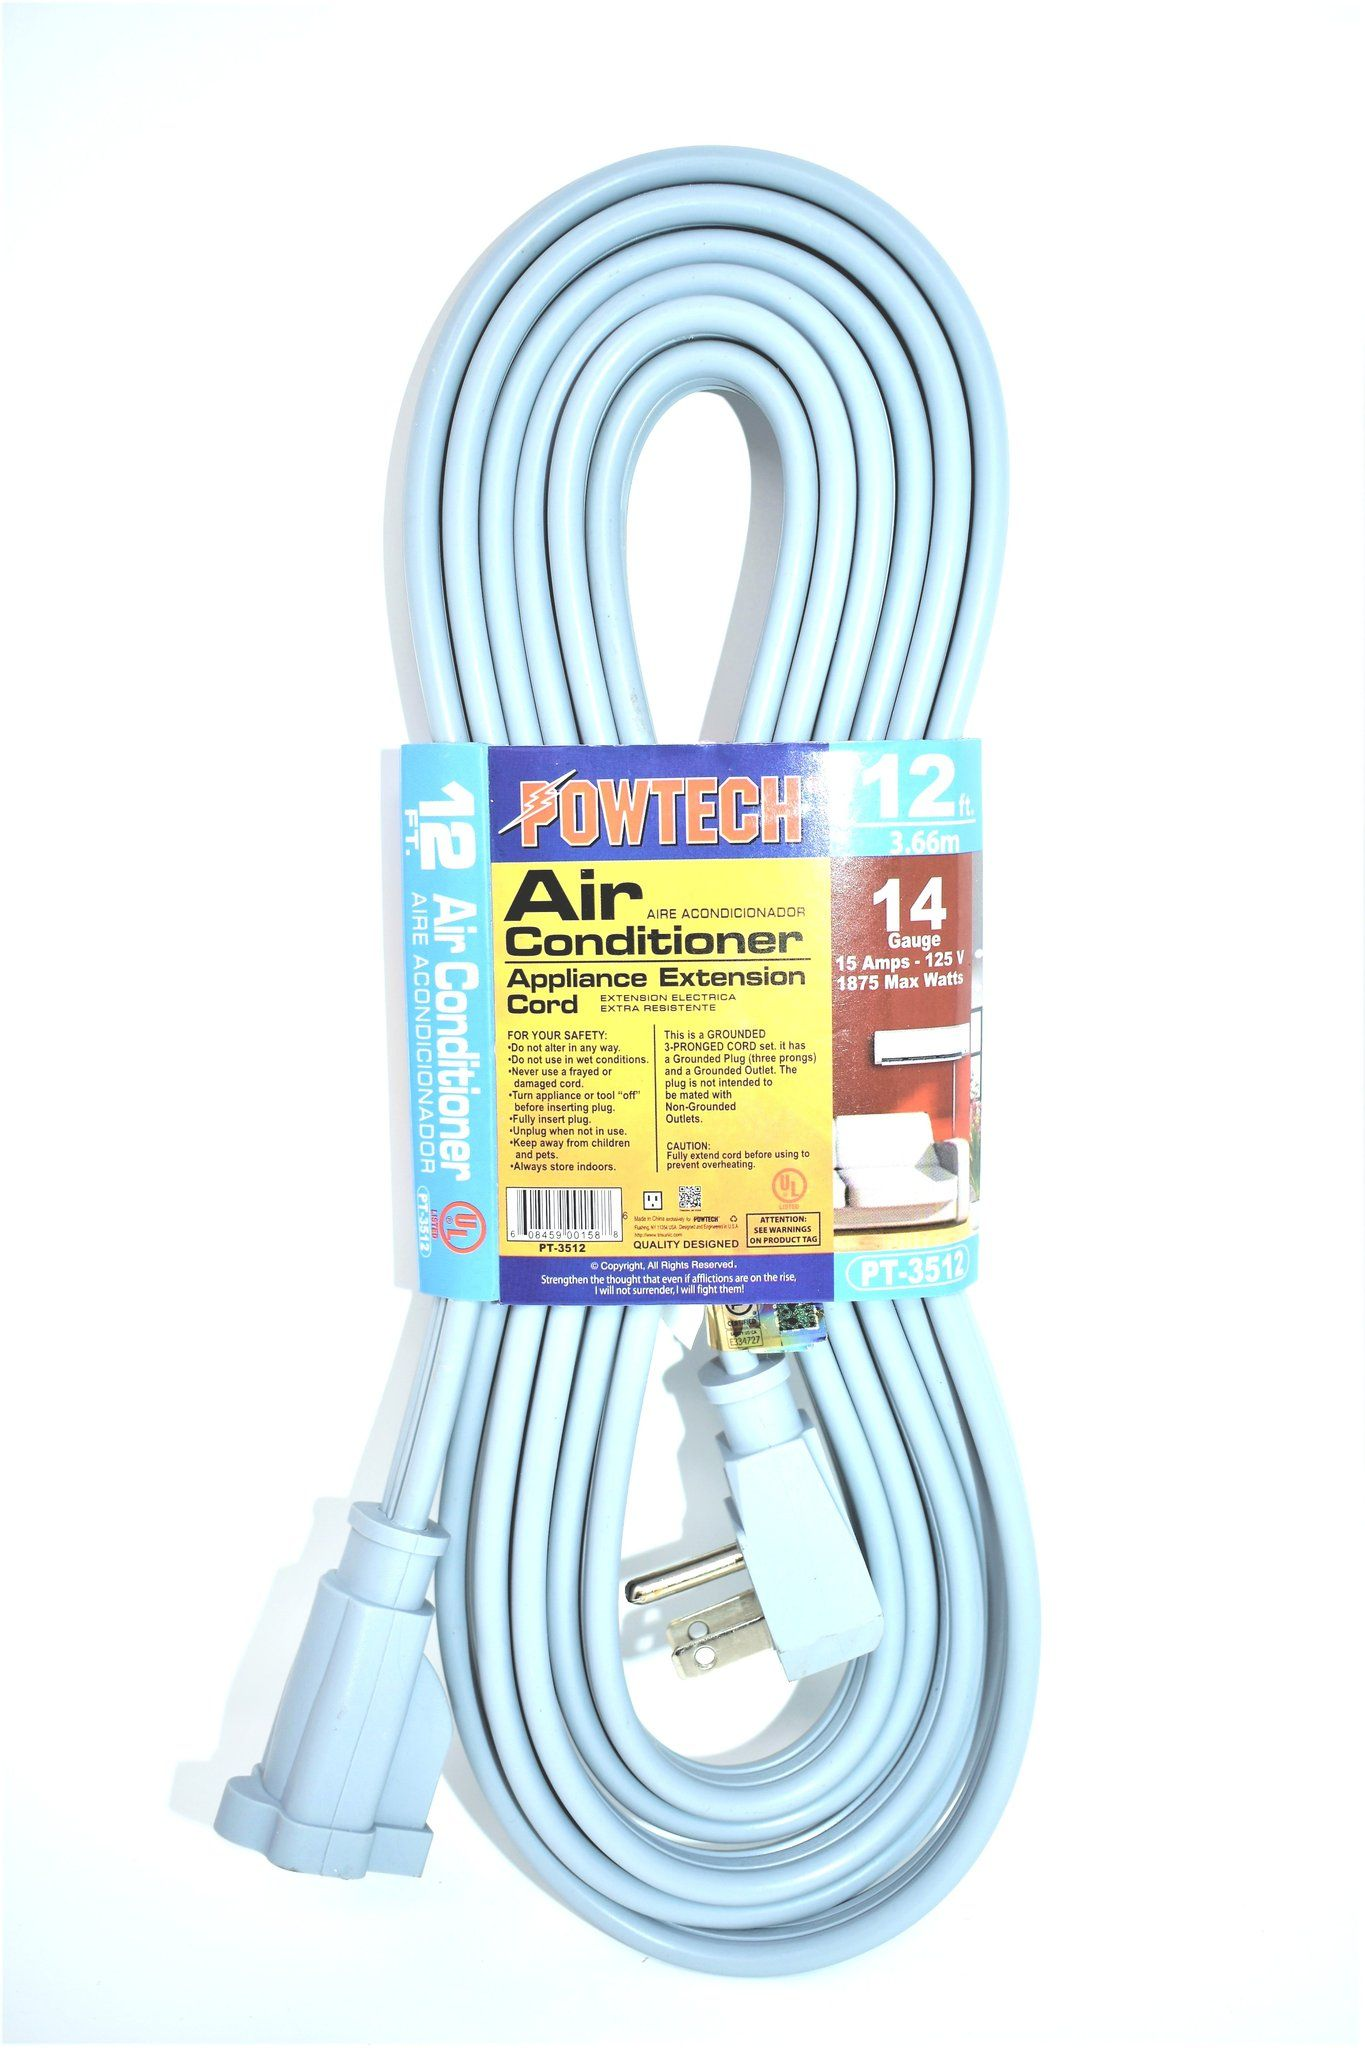 Appliance Extension Cord